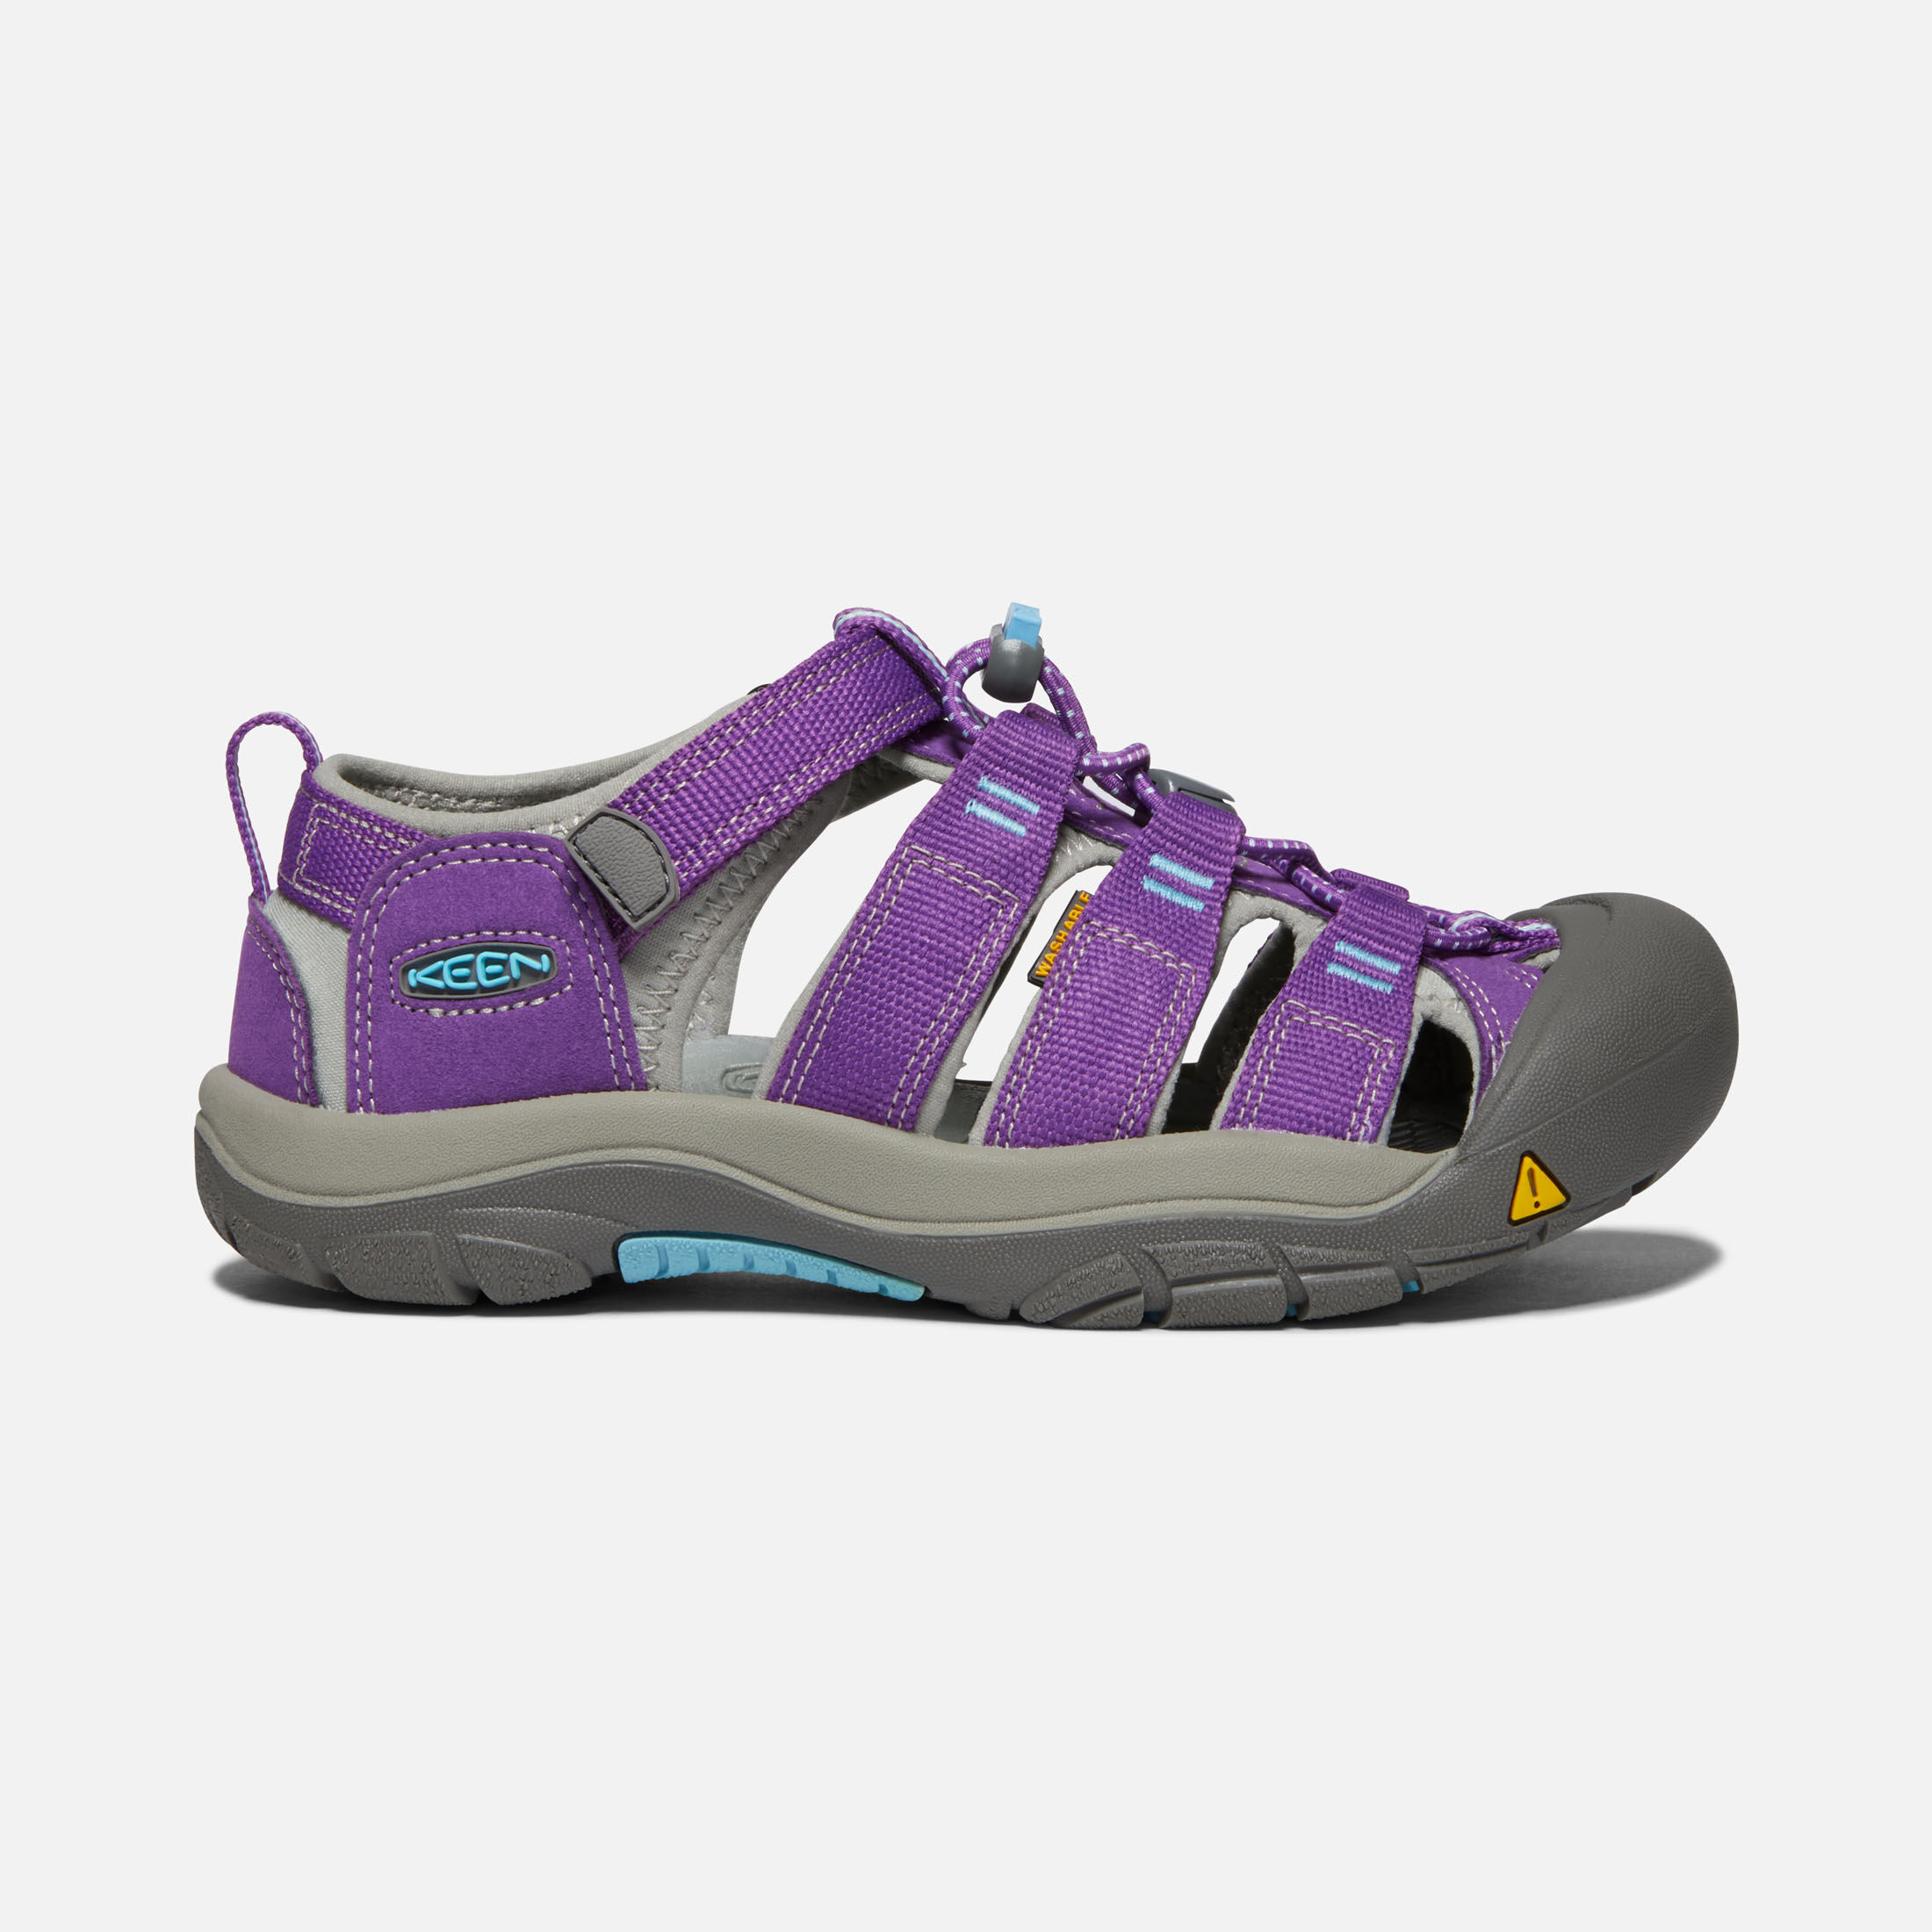 Keen Newport Purple Waterproof Sandals 12 Us Youth Kids Girls Clothing, Shoes & Accessories Kids' Clothing, Shoes & Accs